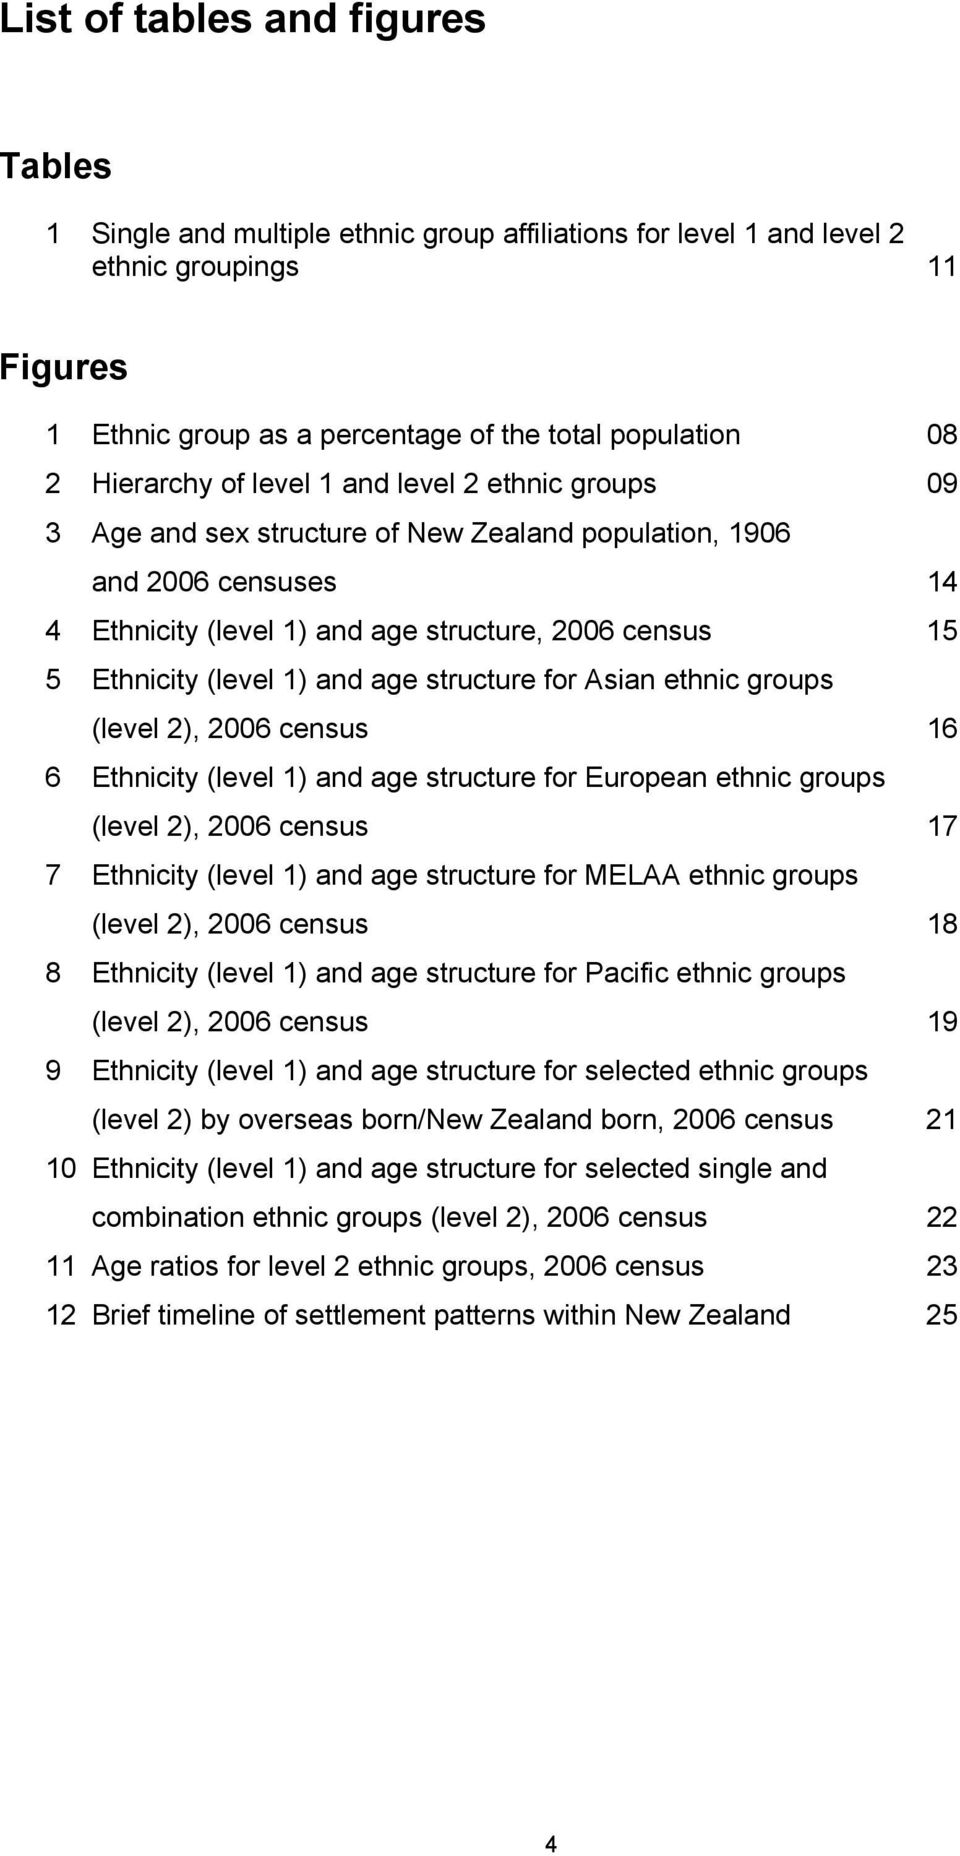 (level 1) and age structure for Asian ethnic groups (level 2), 2006 census 16 6 Ethnicity (level 1) and age structure for European ethnic groups (level 2), 2006 census 17 7 Ethnicity (level 1) and